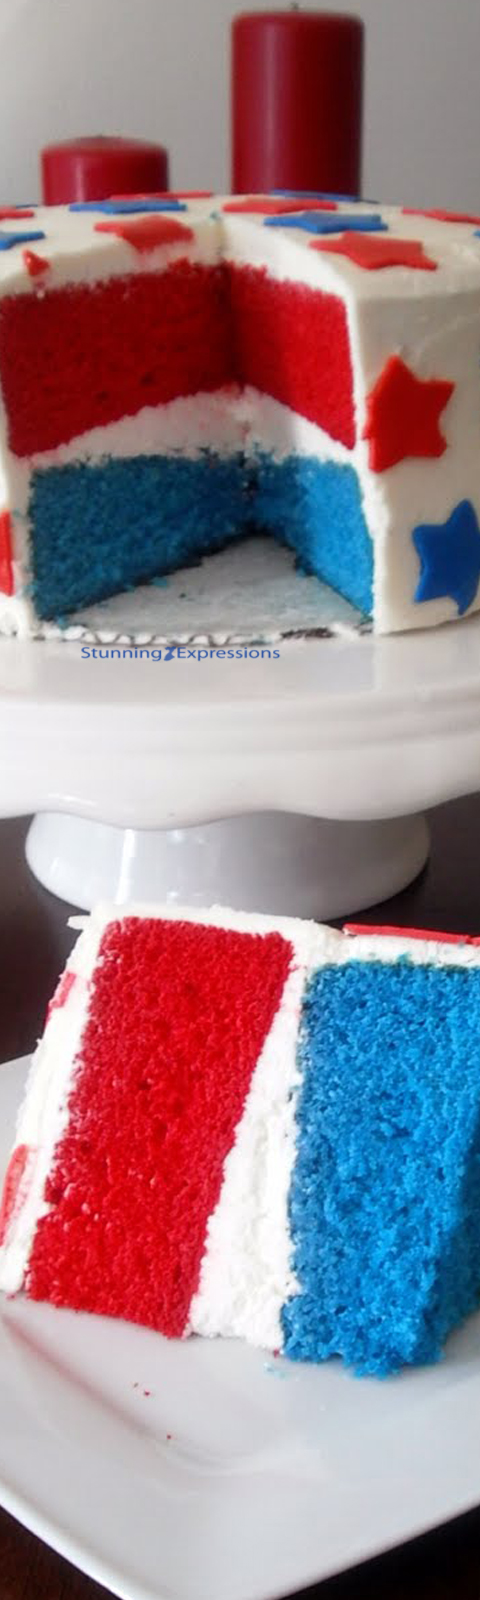 Surprising Red White And Blue Cake Stunning Expressions Funny Birthday Cards Online Alyptdamsfinfo